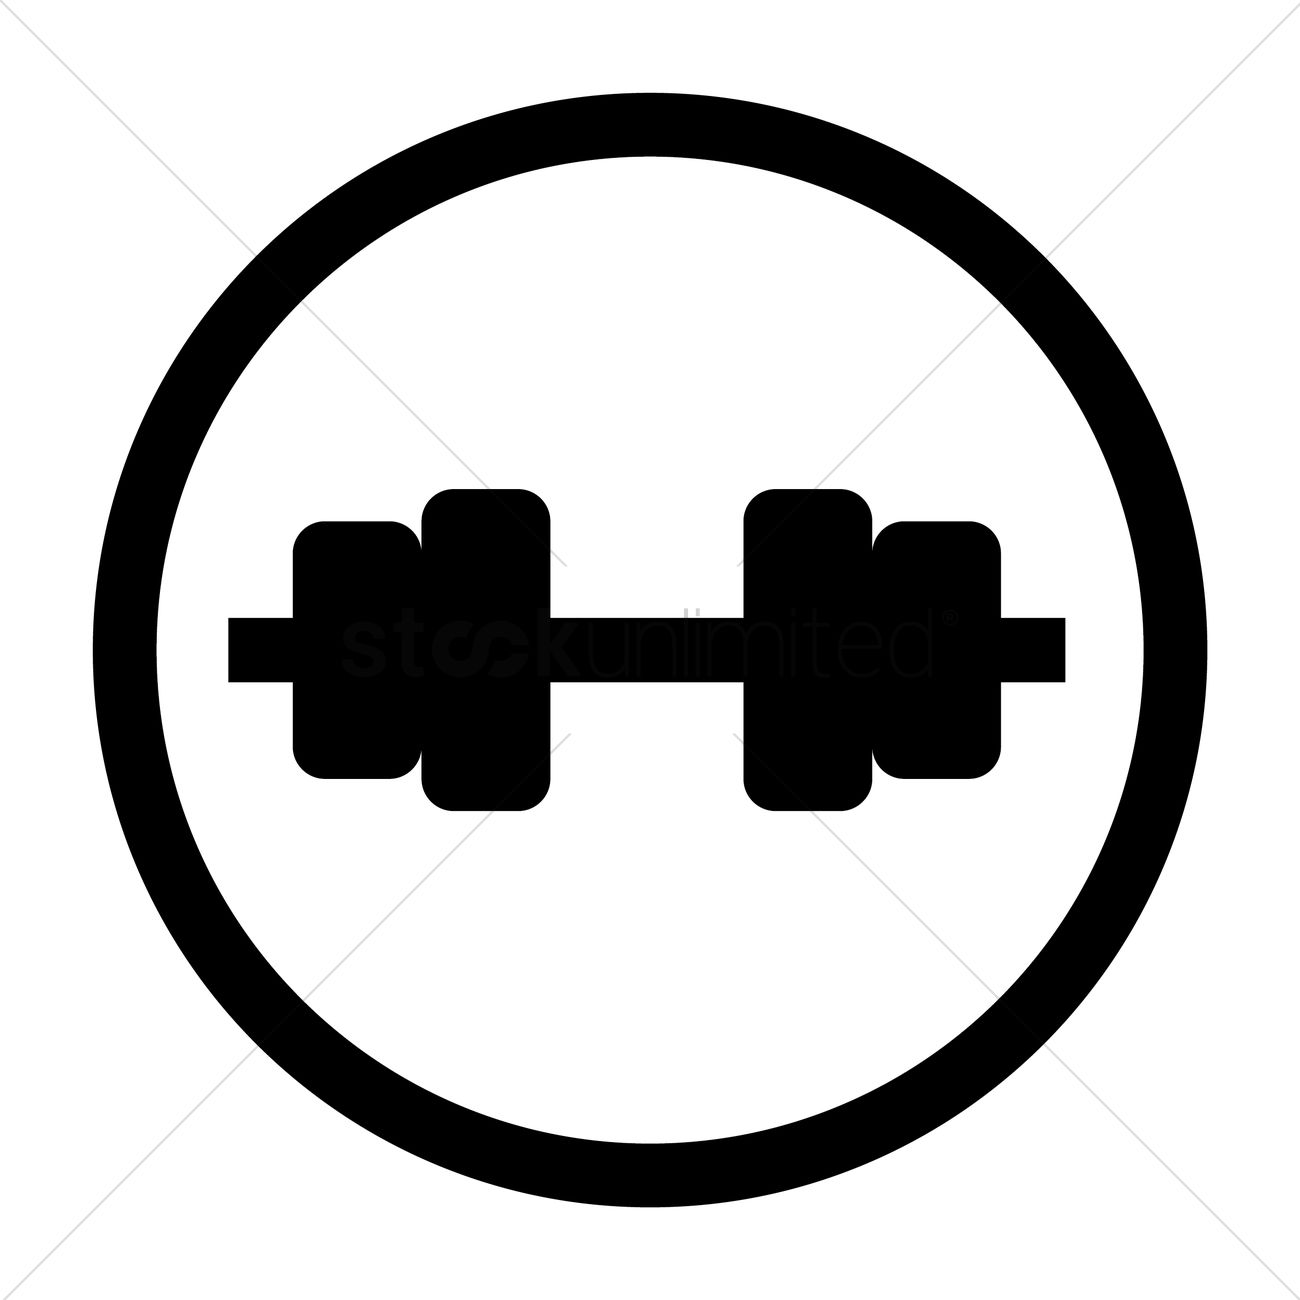 Fitness icon Vector Image - 1648801 | StockUnlimited